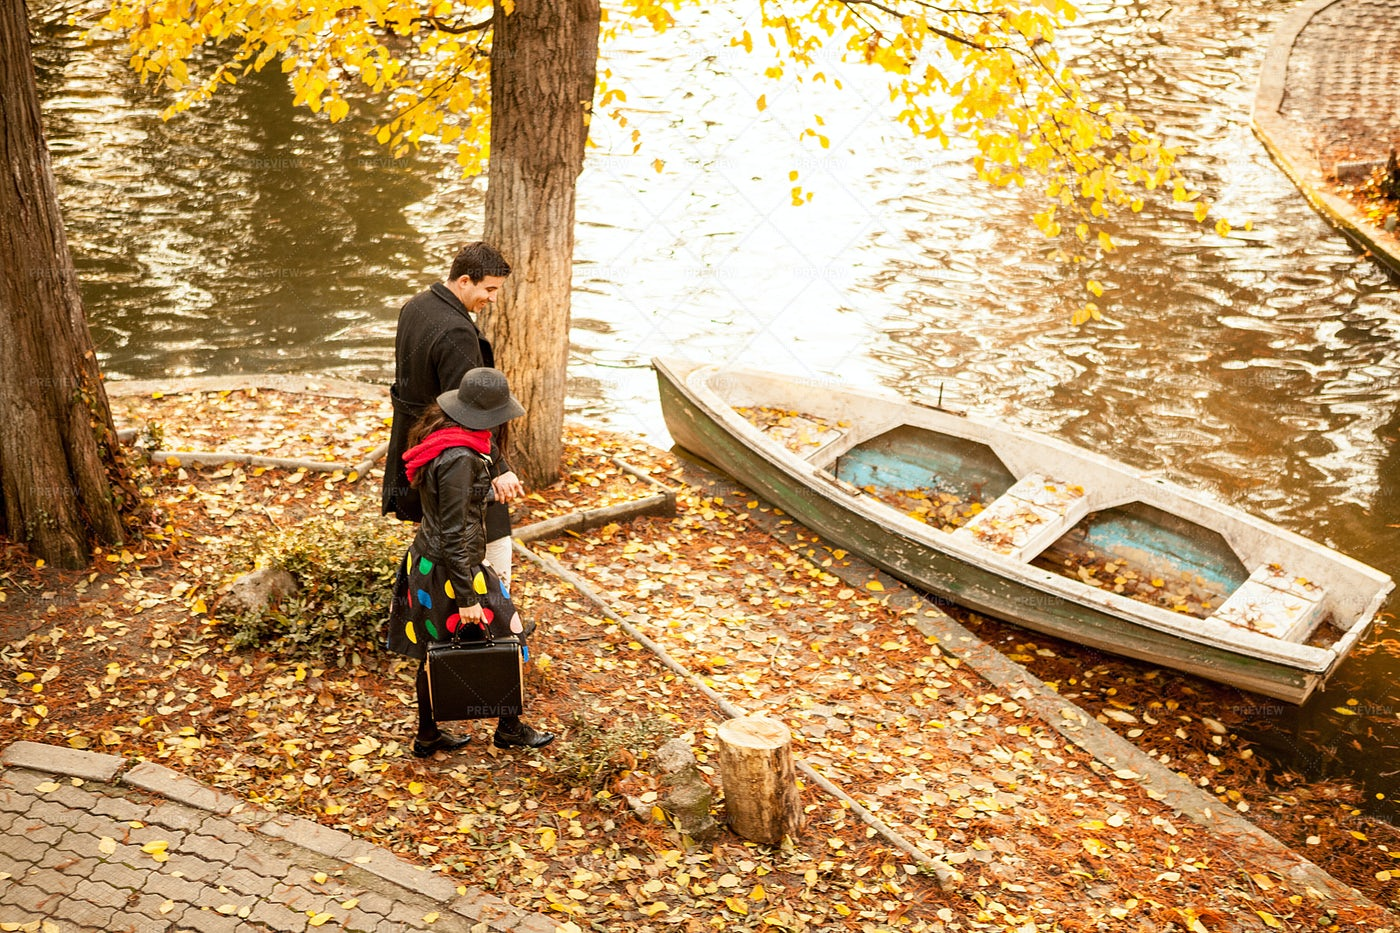 Couple Next To A Boat In Park: Stock Photos